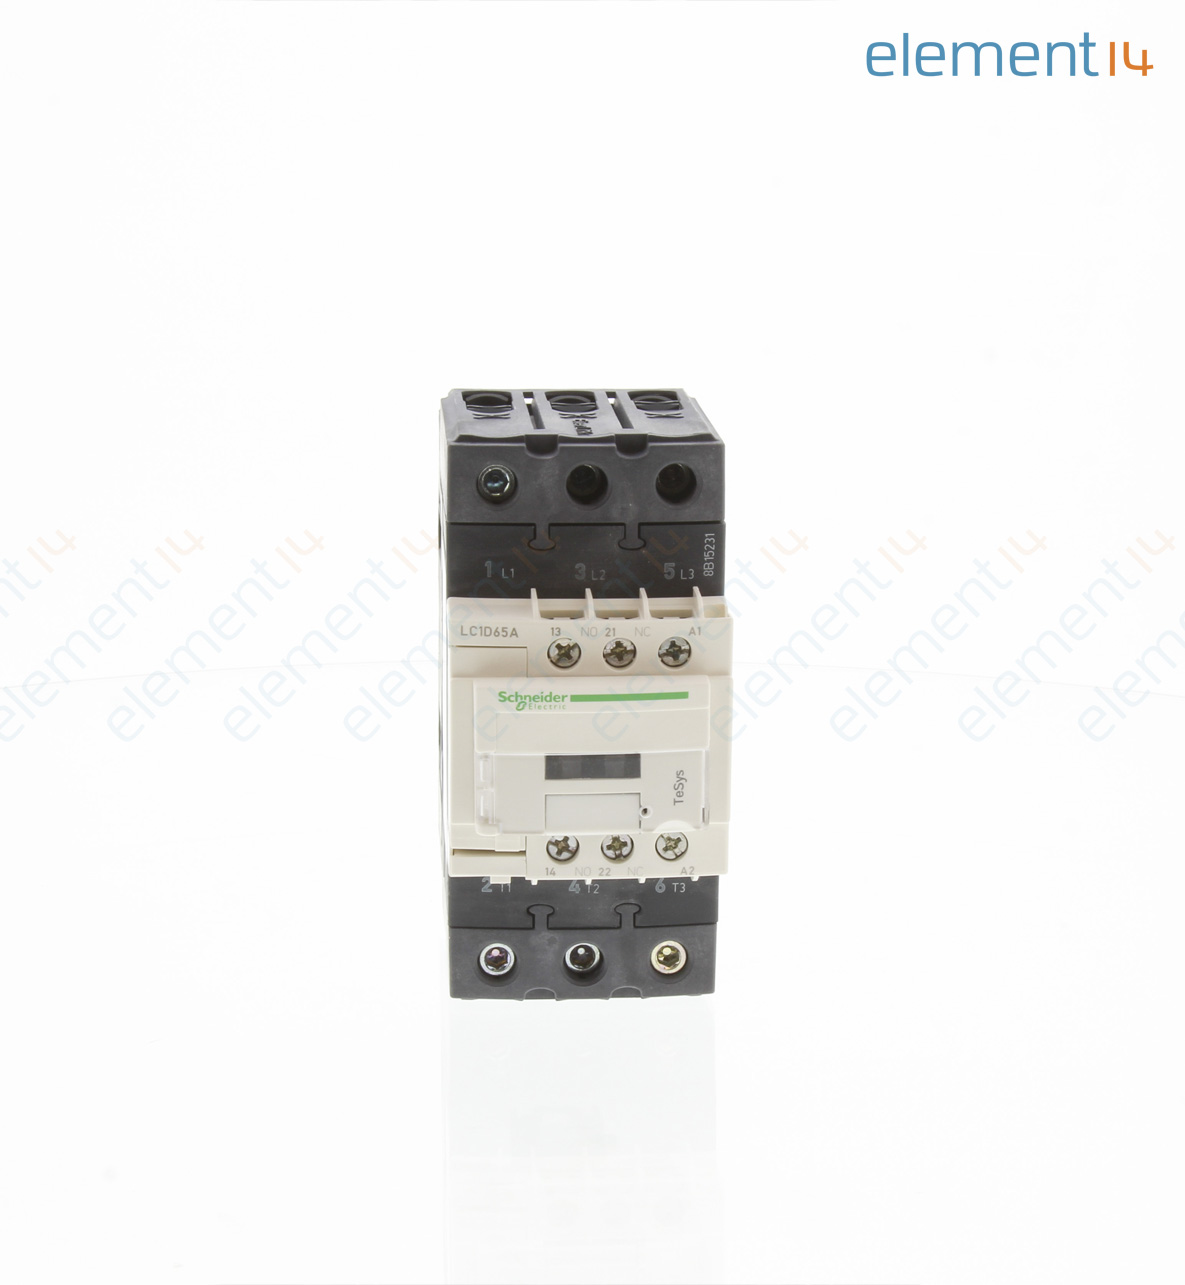 Lc1d65am7 Schneider Electric Contactor Tesys D 65 A Under Current Relay Add To Compare